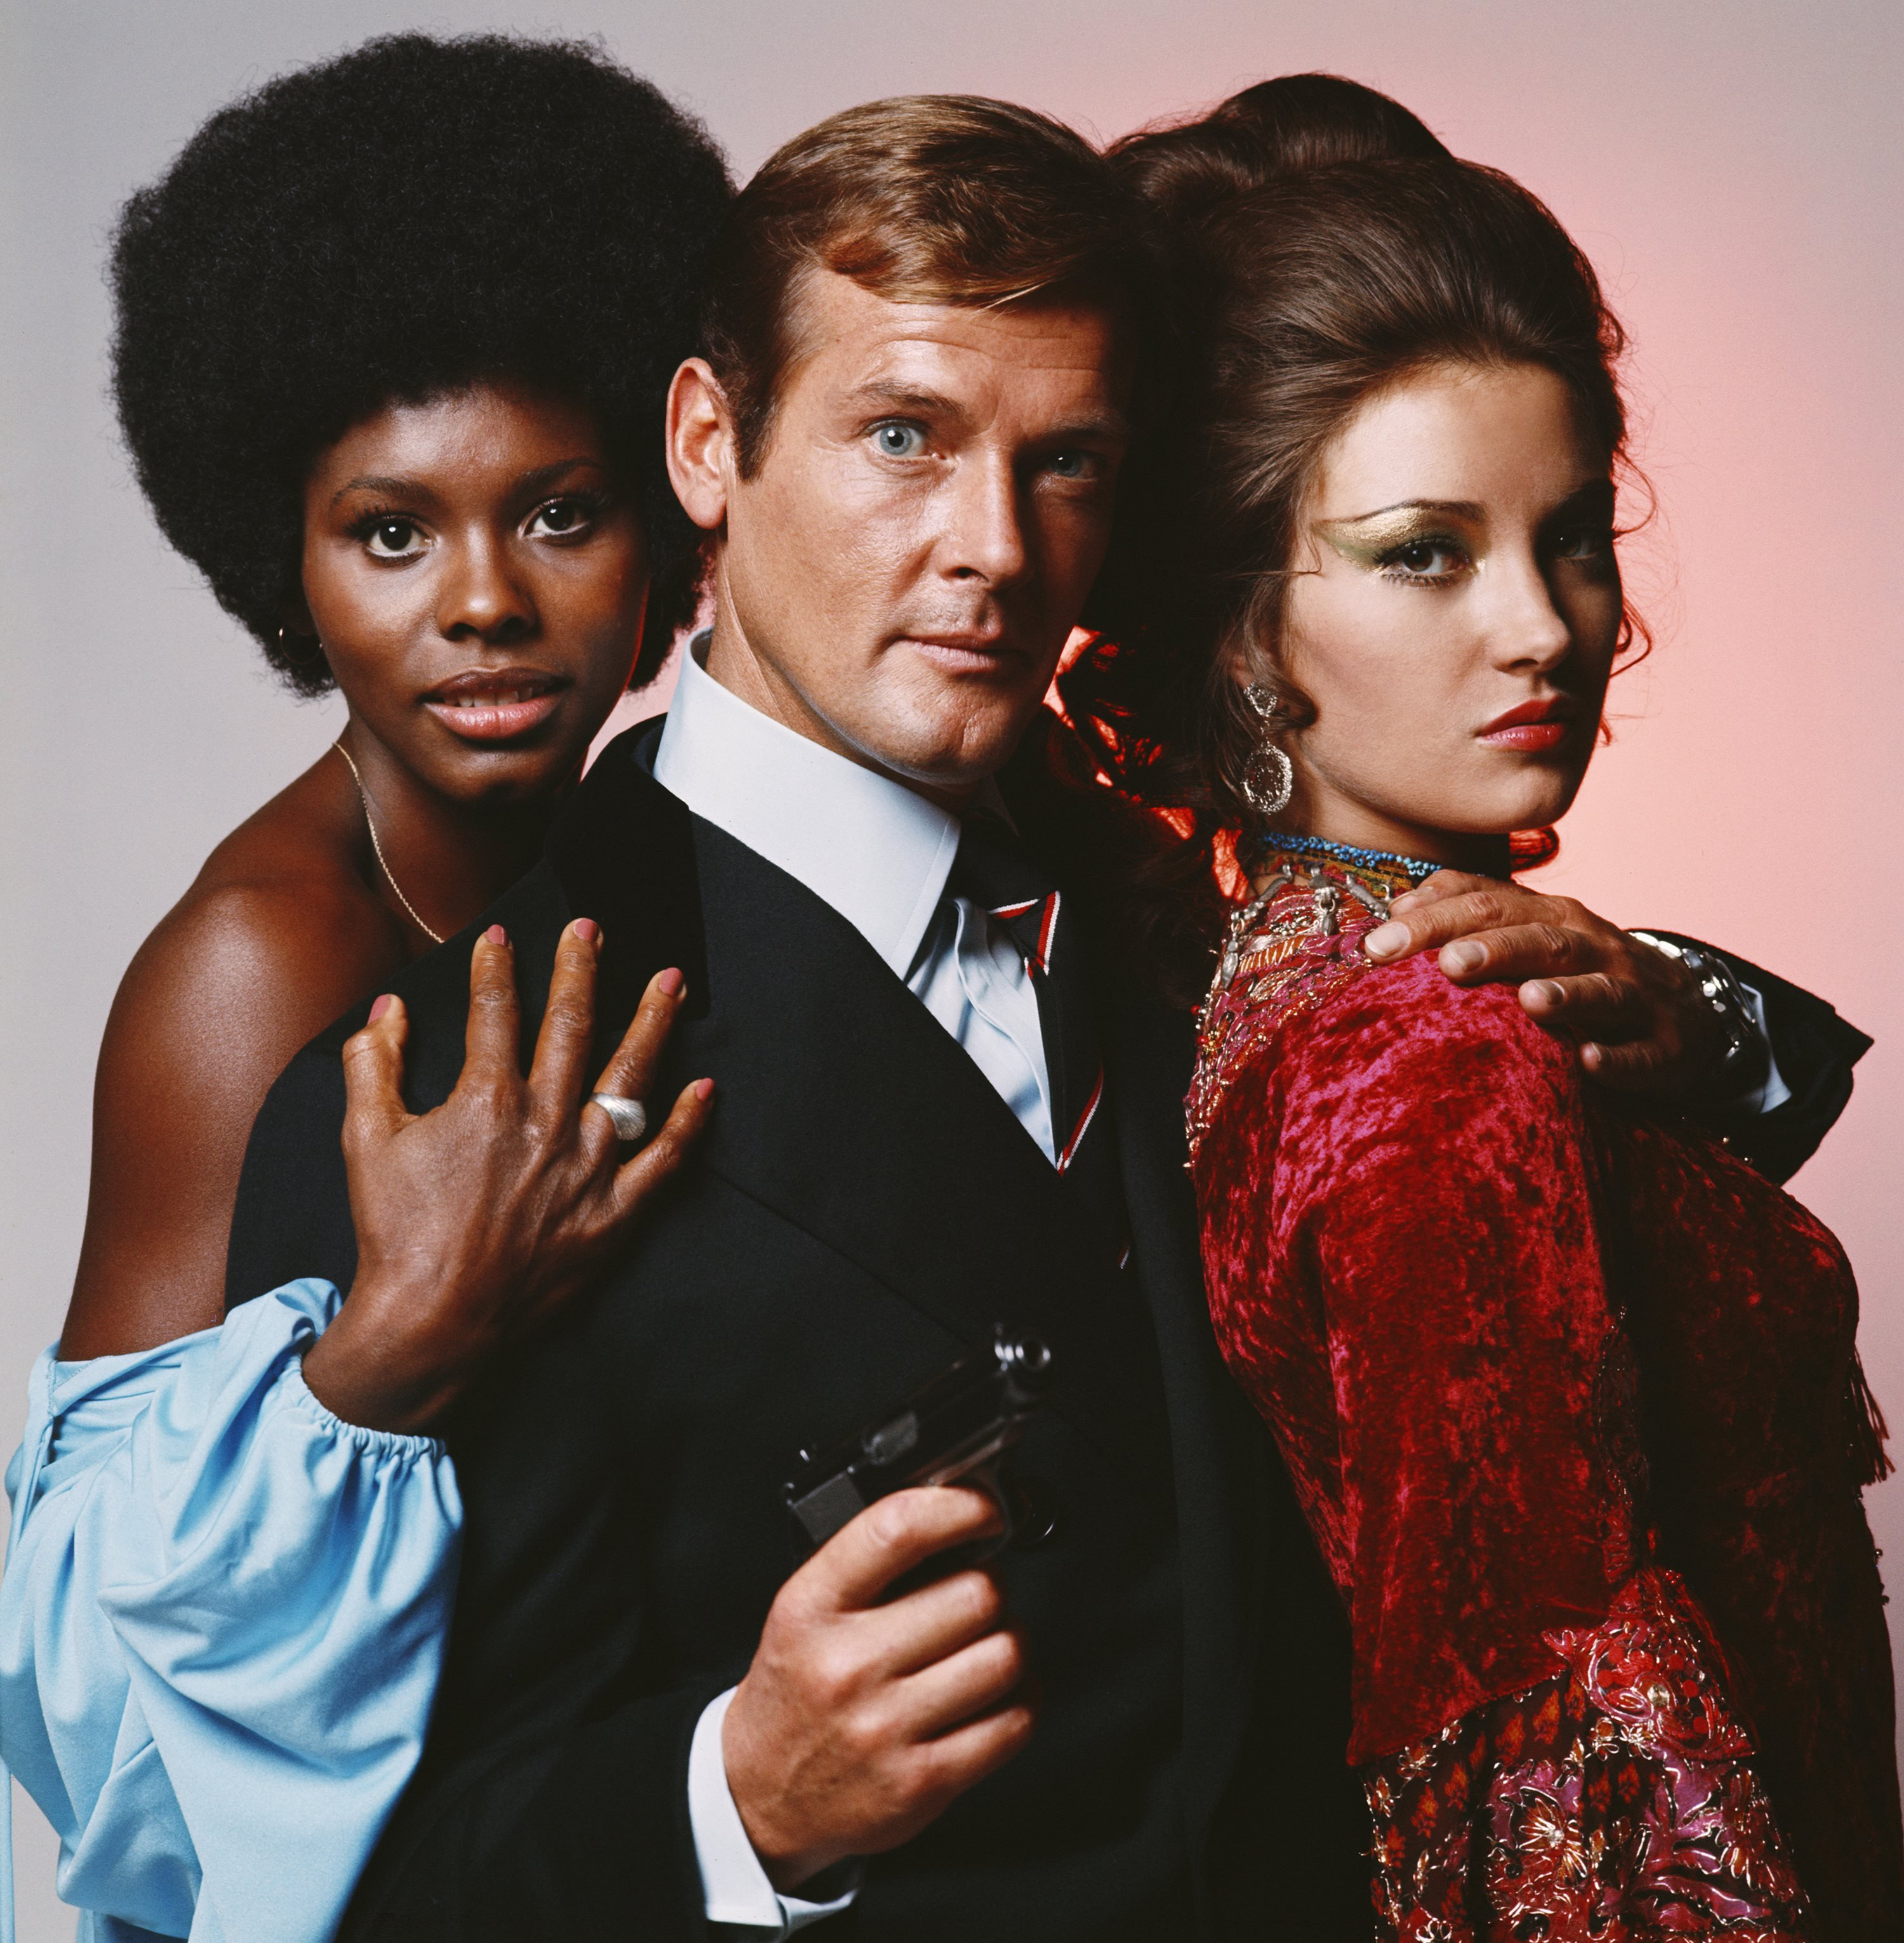 Actor Roger Moore as James Bond with Live and Let Die co-stars Gloria Hendry (left) and Jane Seymour in 1973